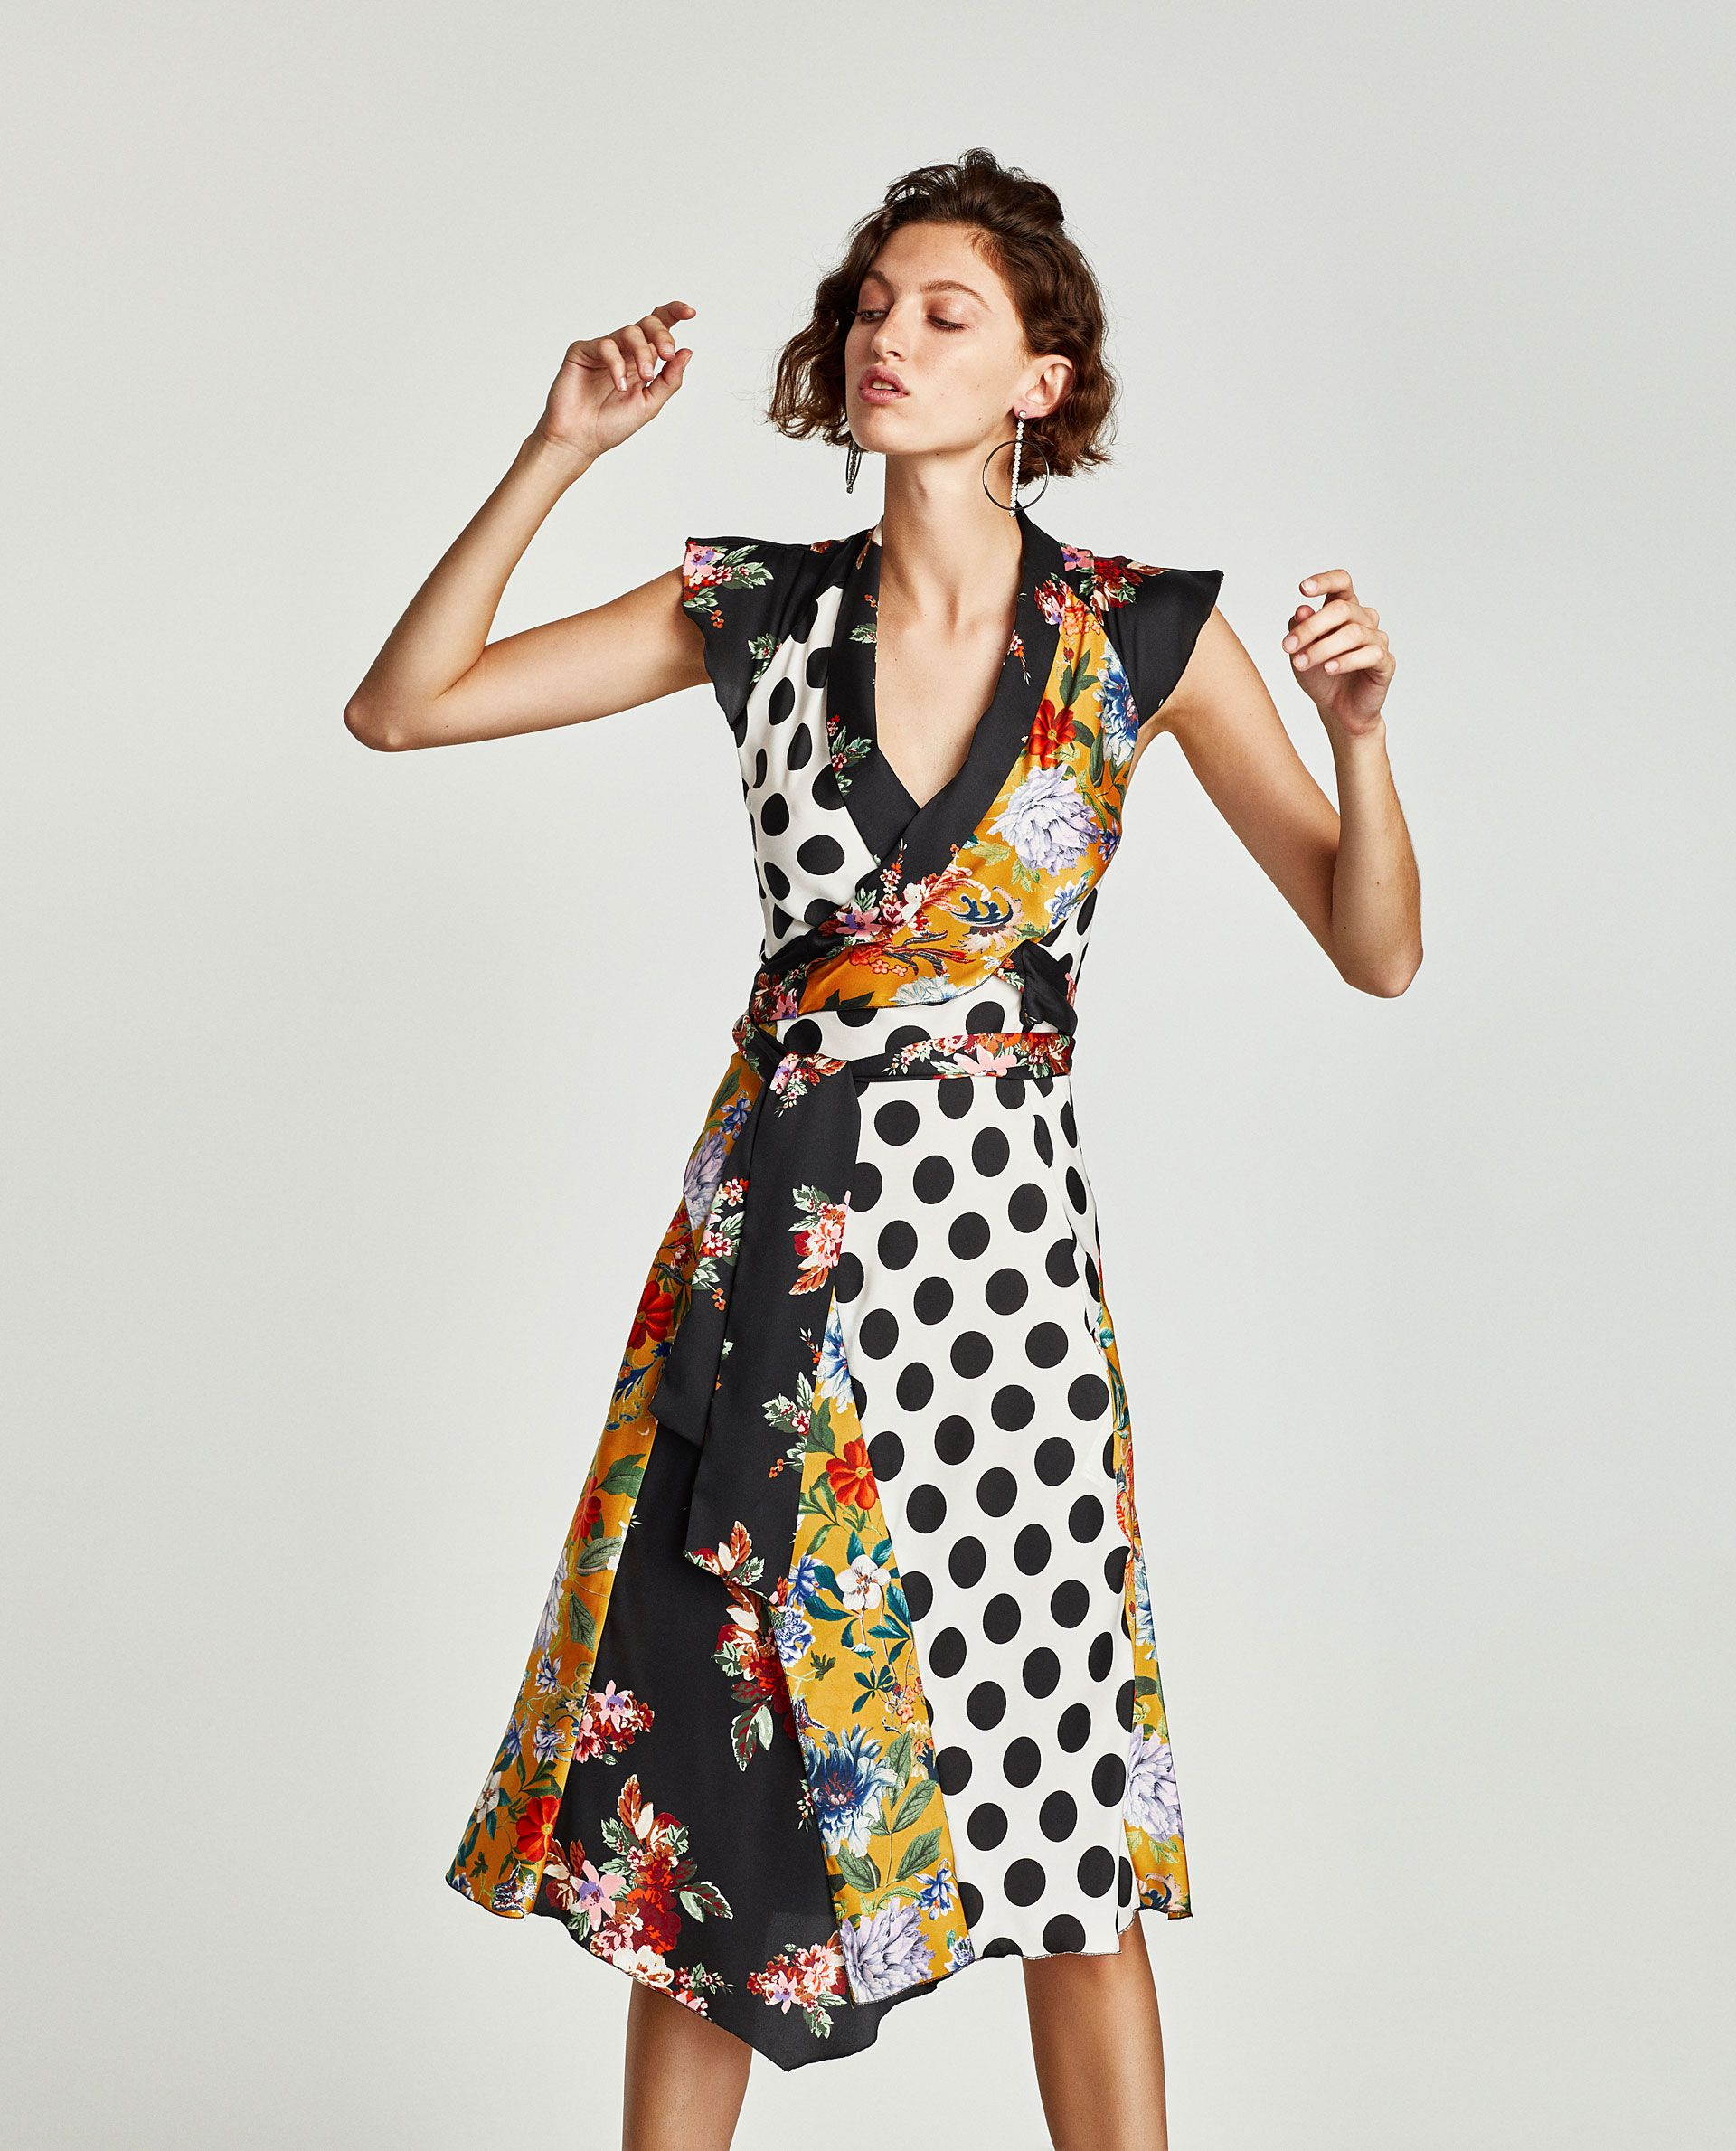 4f7709a1d2 Image 6 of FLORAL AND POLKA DOT PATCHWORK DRESS from Zara | My Style ...